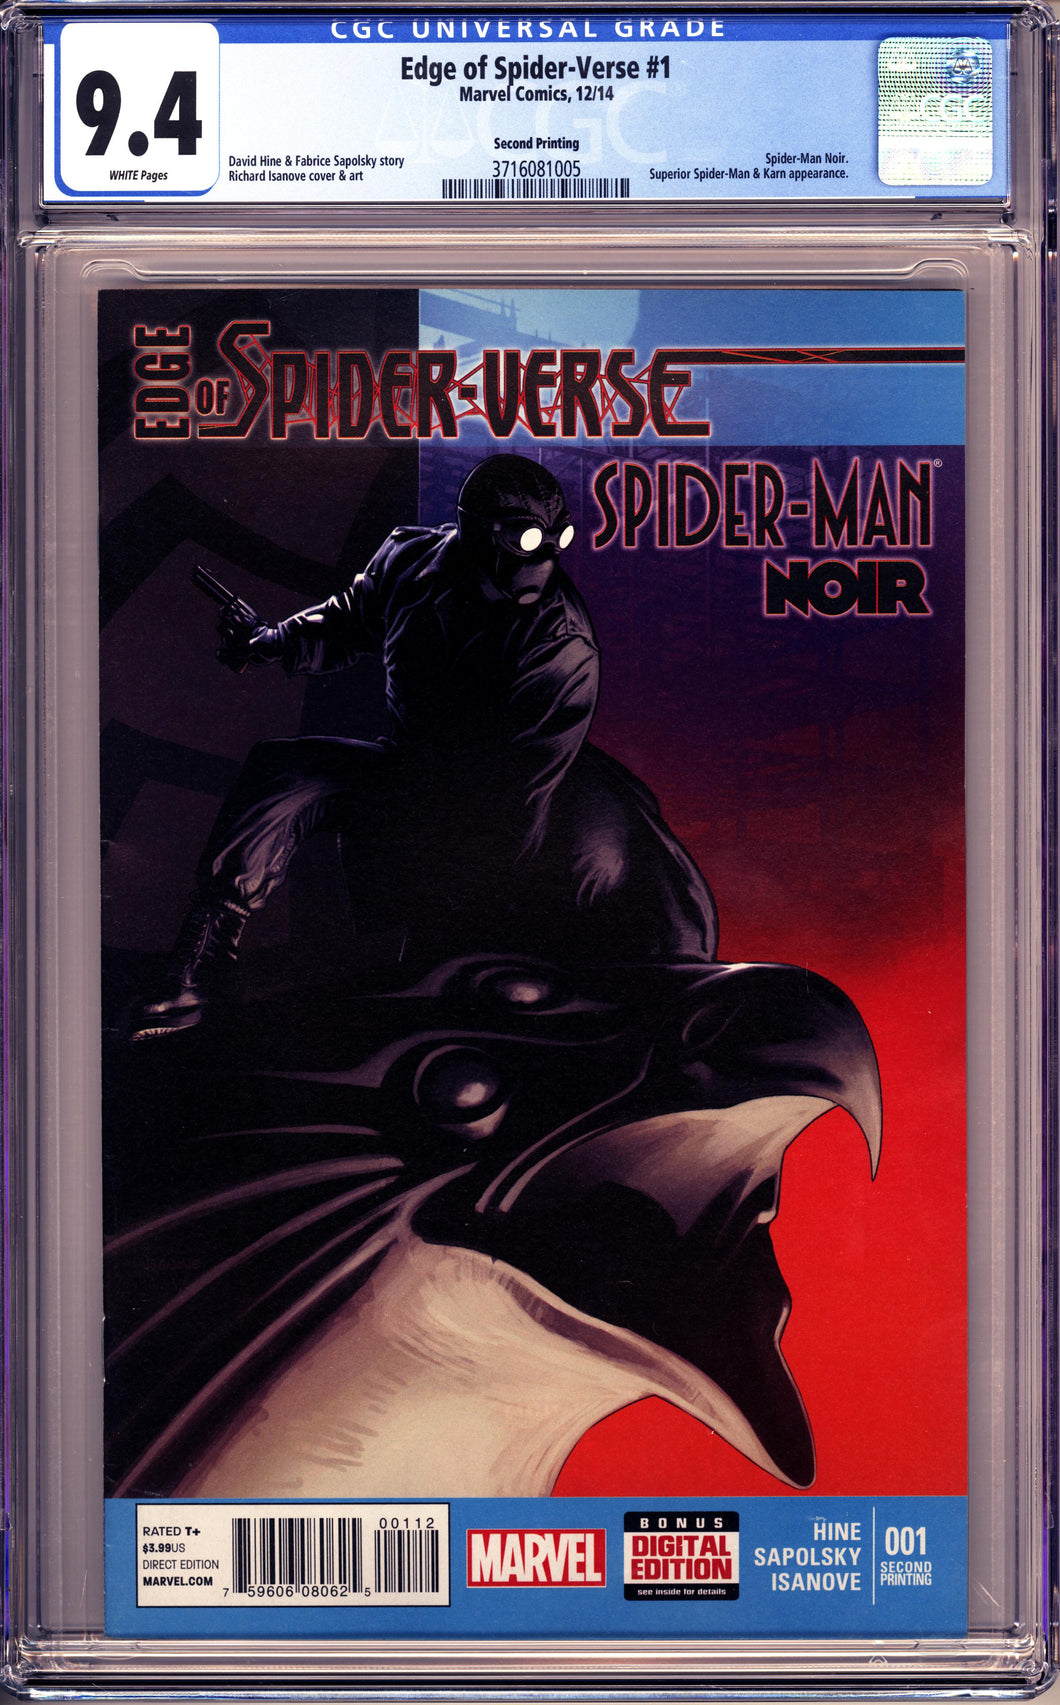 EDGE OF SPIDER-VERSE #1 (2014 Marvel) CGC 9.4 NM SPIDER-MAN NOIR 2nd Print